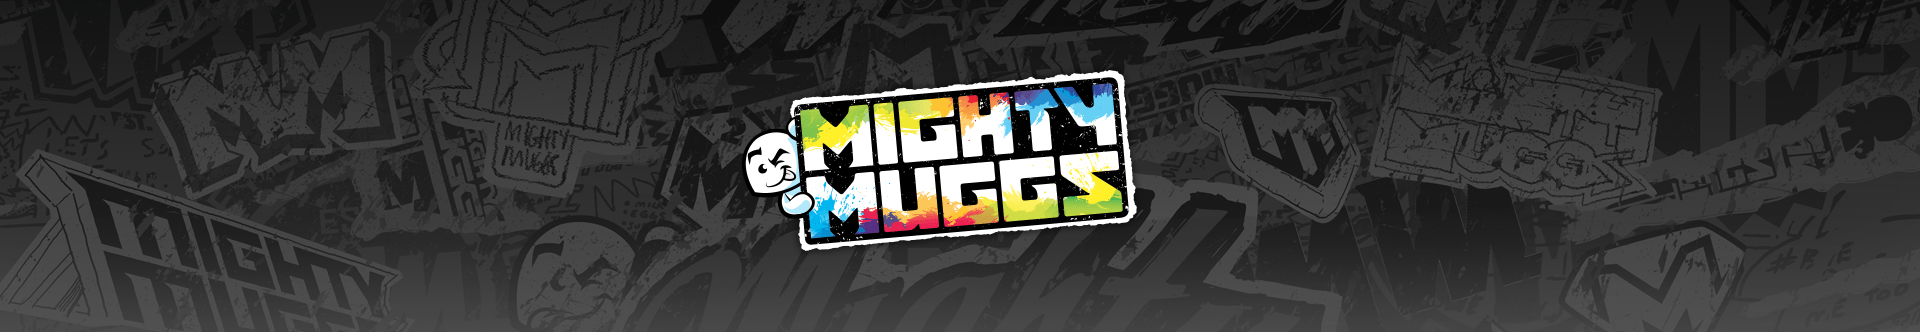 Mighty Muggs Banner